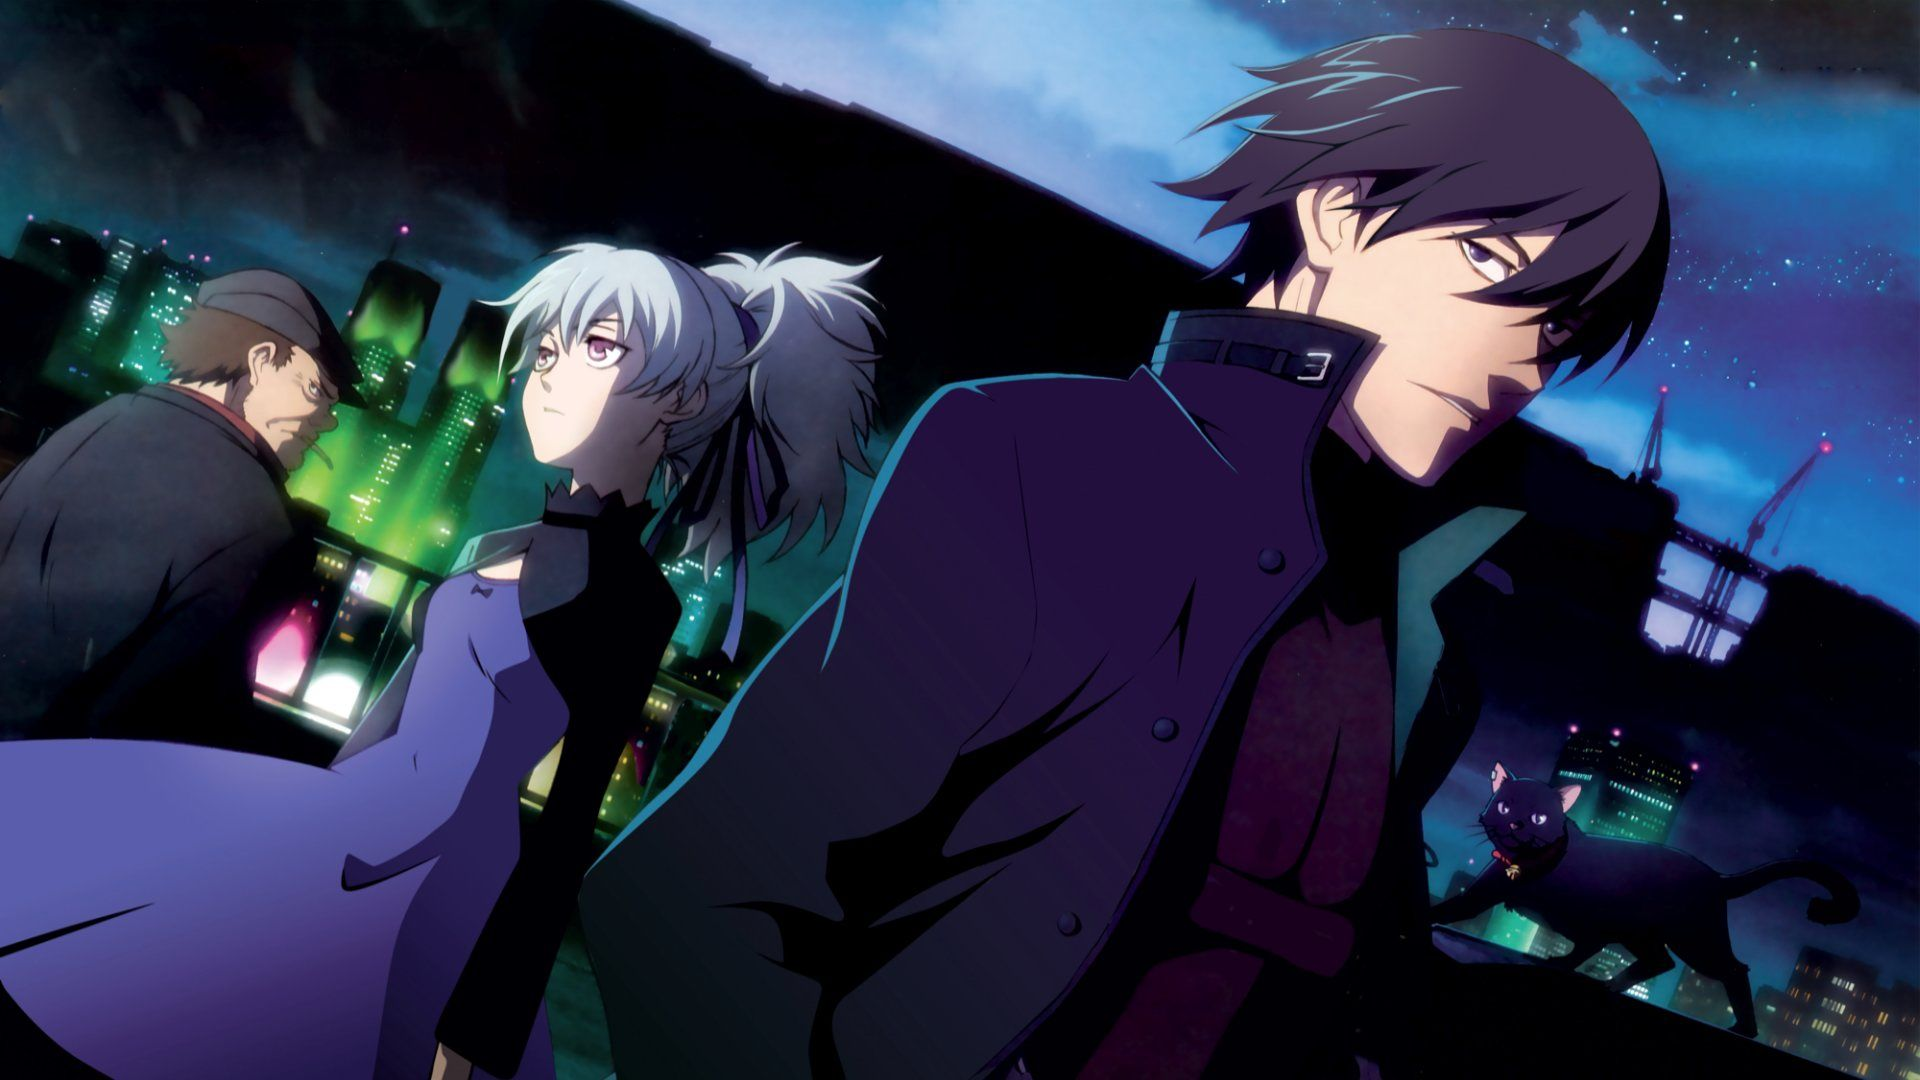 darker than black | anime | pinterest | dark, hd wallpaper and anime